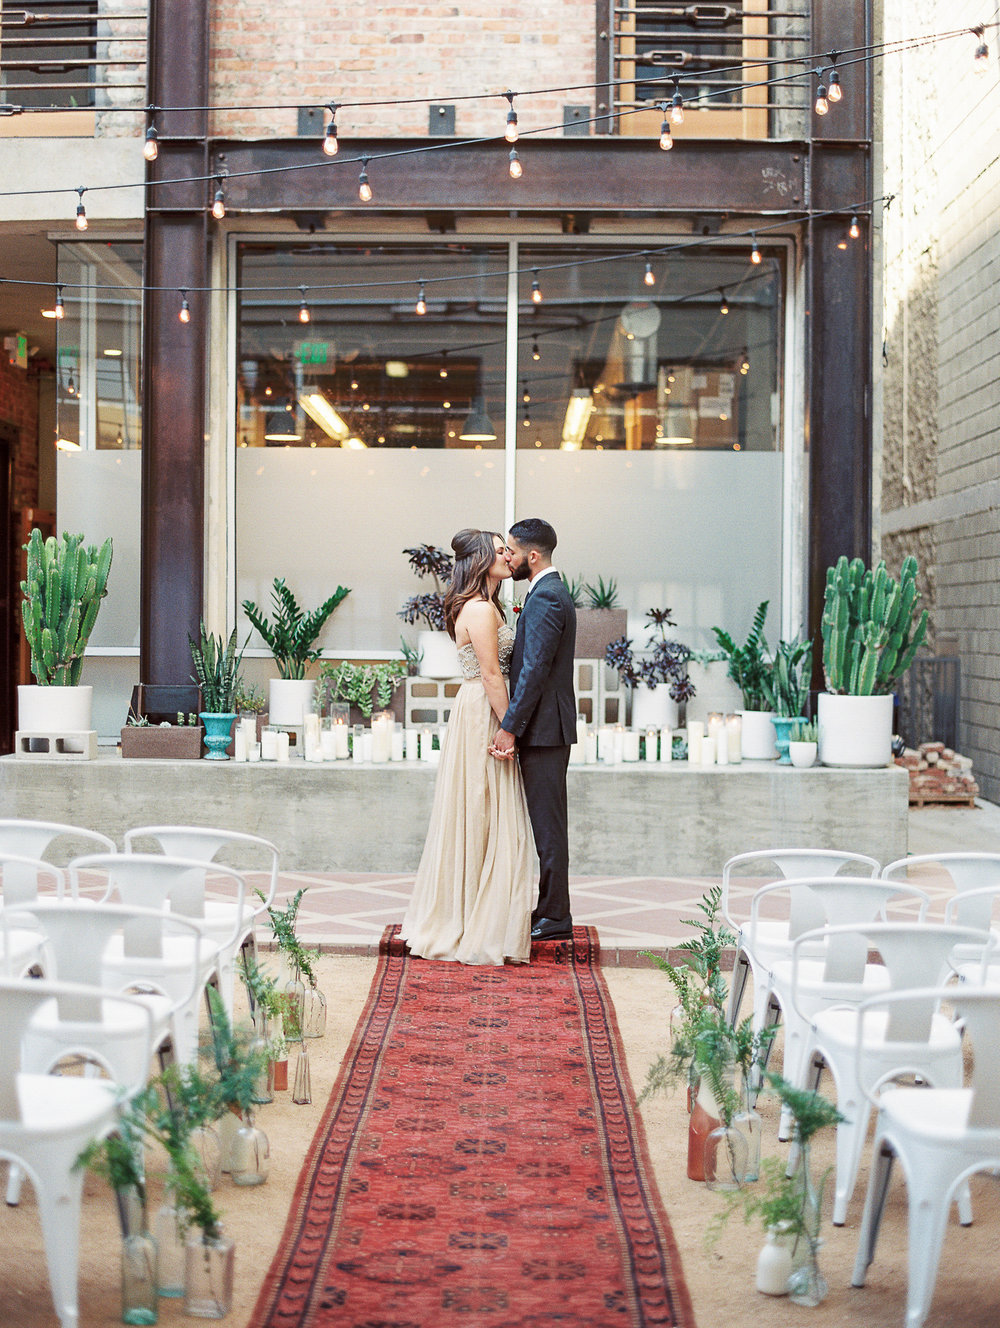 Wedding at Howl in Long Beach | Green Apple Event Co | Southern California Wedding Design | Sposto Photography